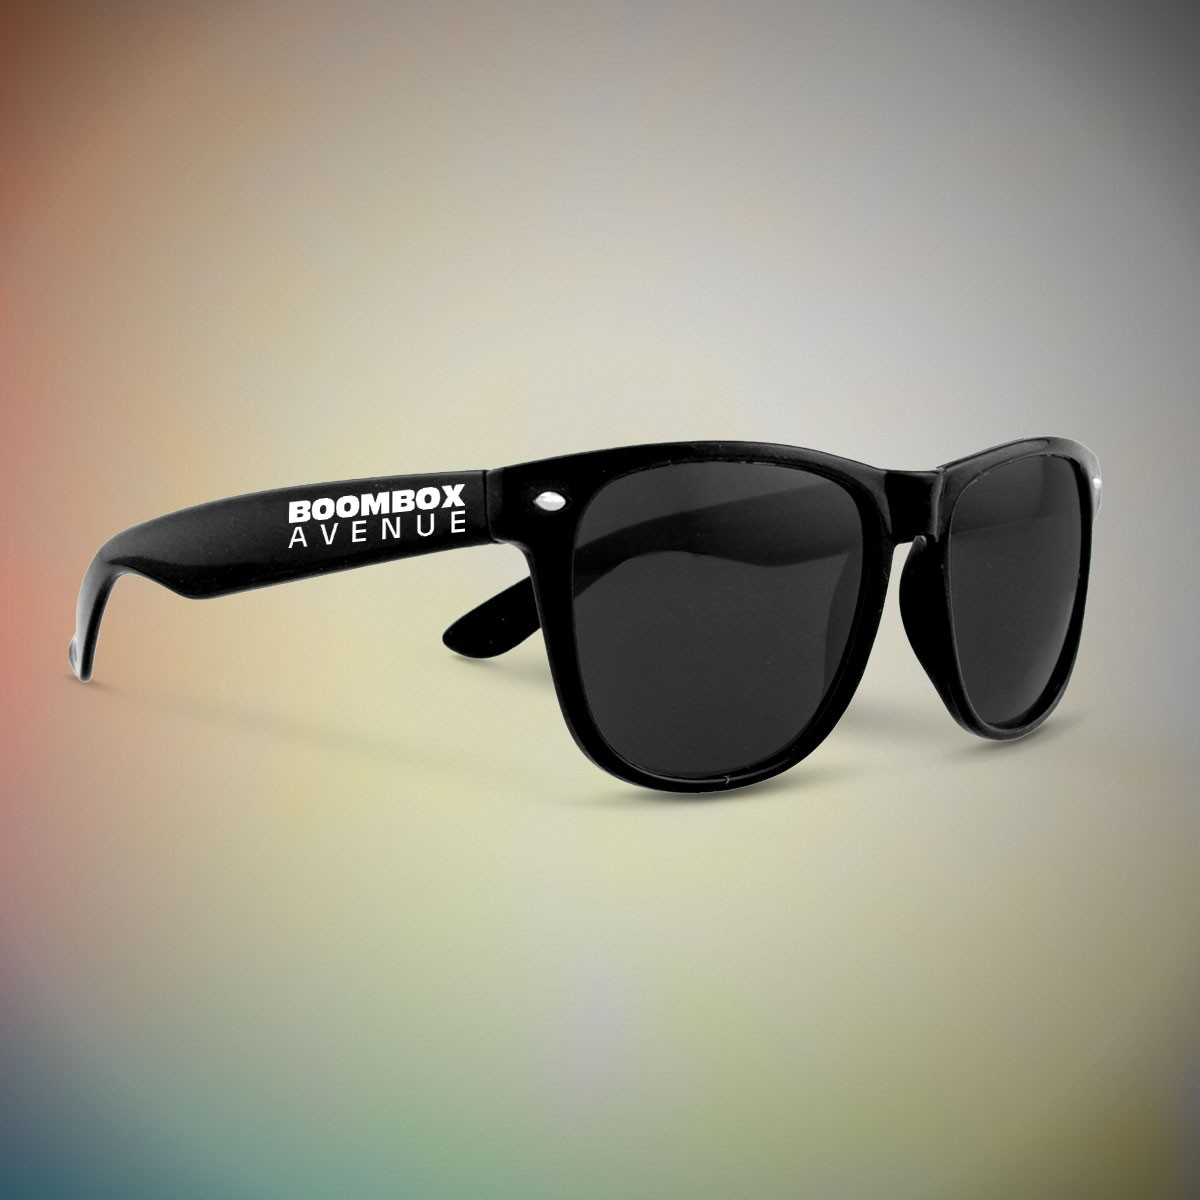 BLACK FRAME RETRO SUNGLASSES